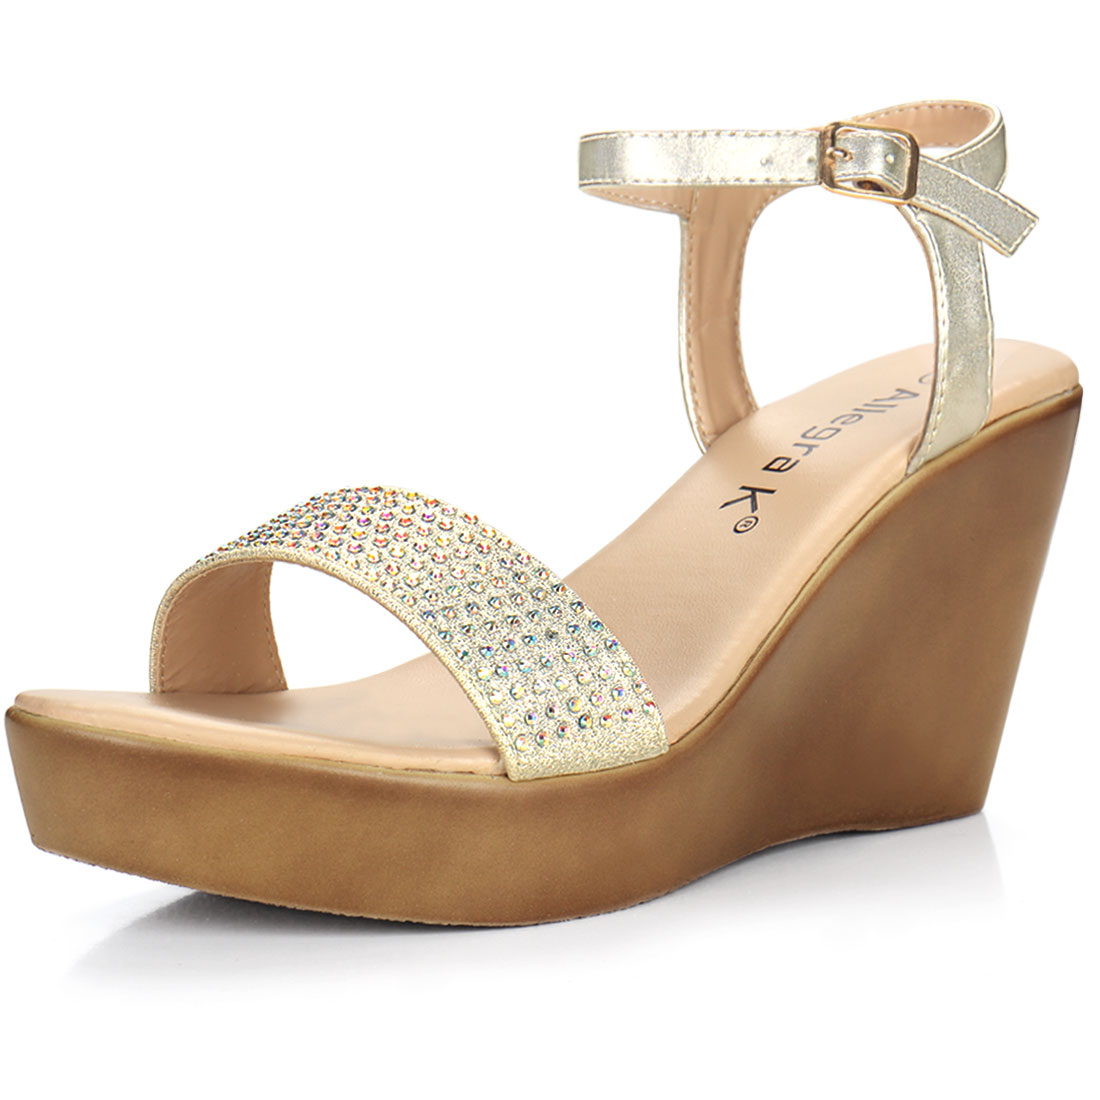 Woman Rhinestones Embellished Open Toe Wedge Sandals Gold US 7